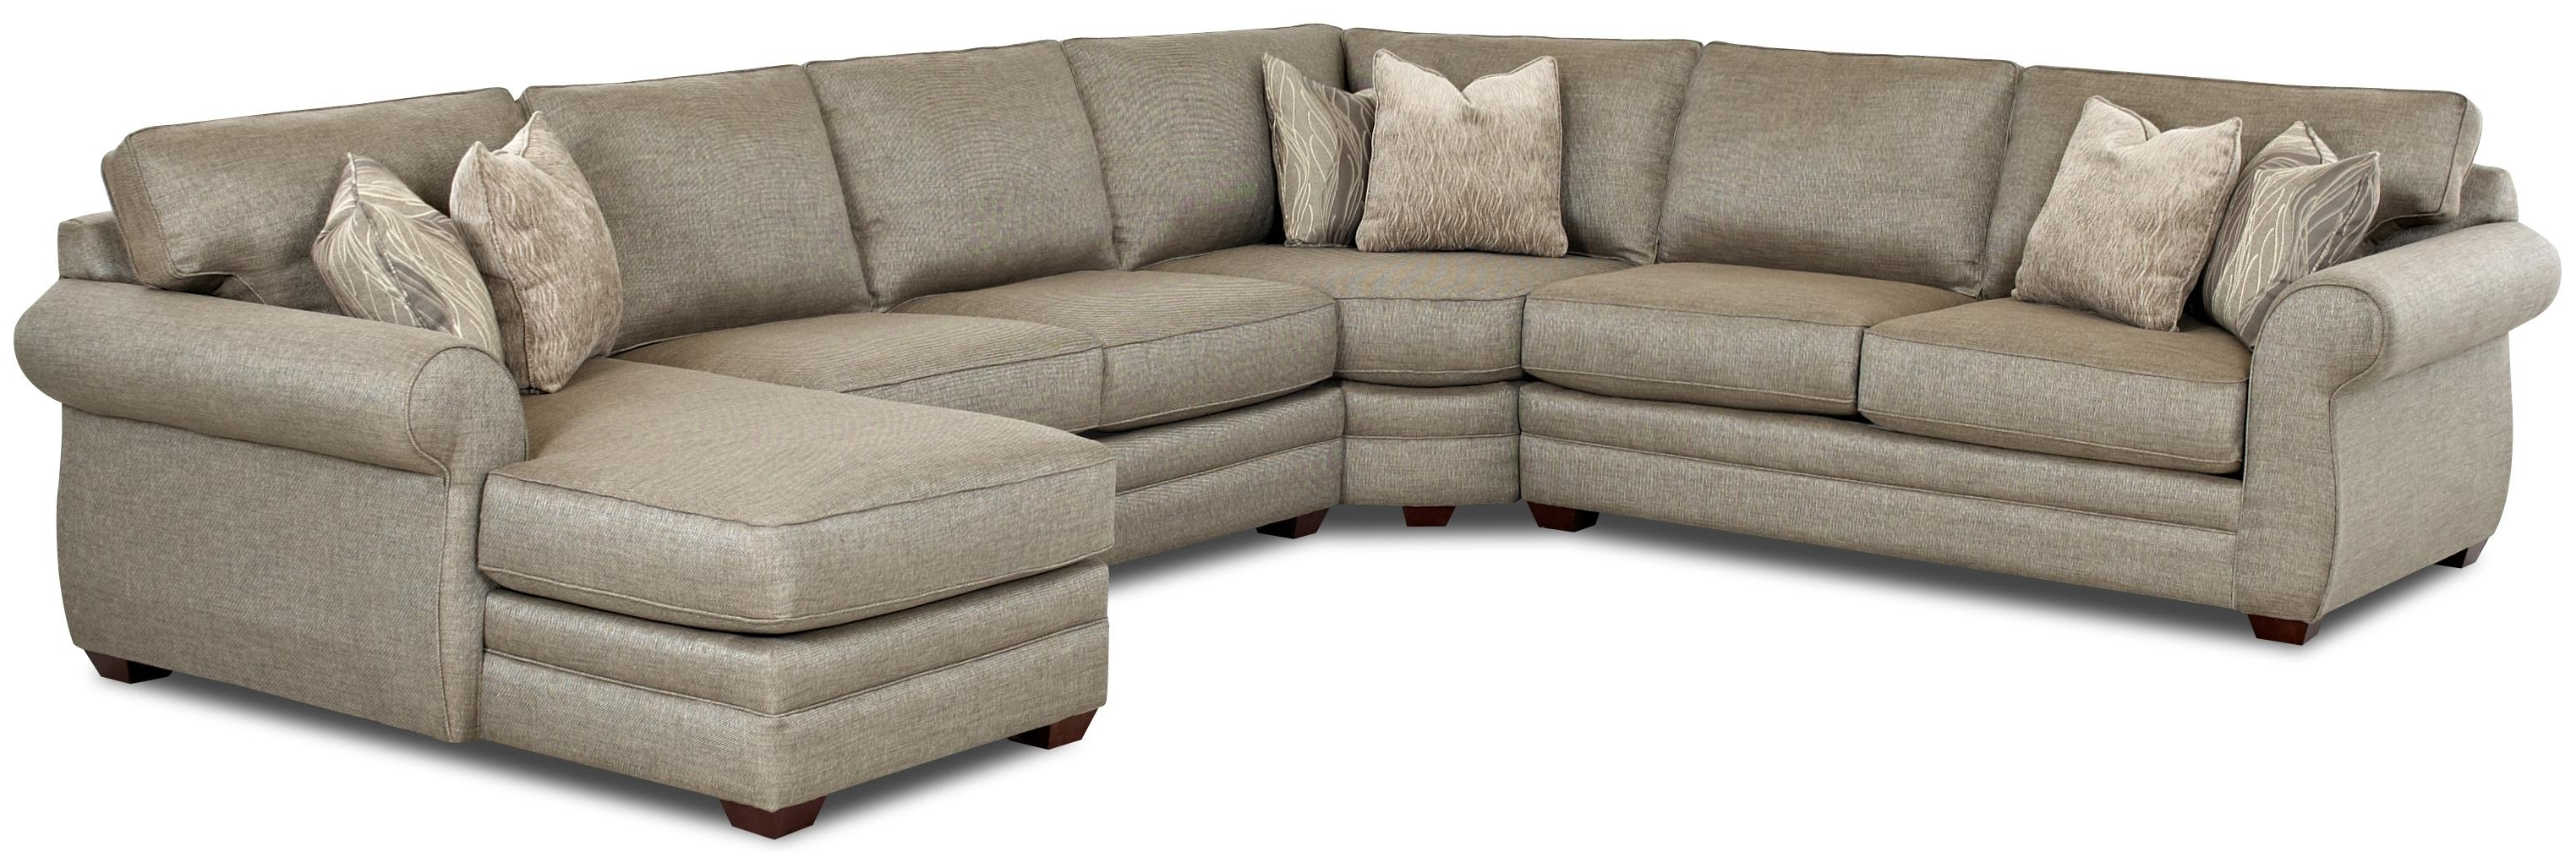 Most Recent Klaussner Clanton Transitional Sectional Sofa With Right Chaise In Pittsburgh Sectional Sofas (View 12 of 20)